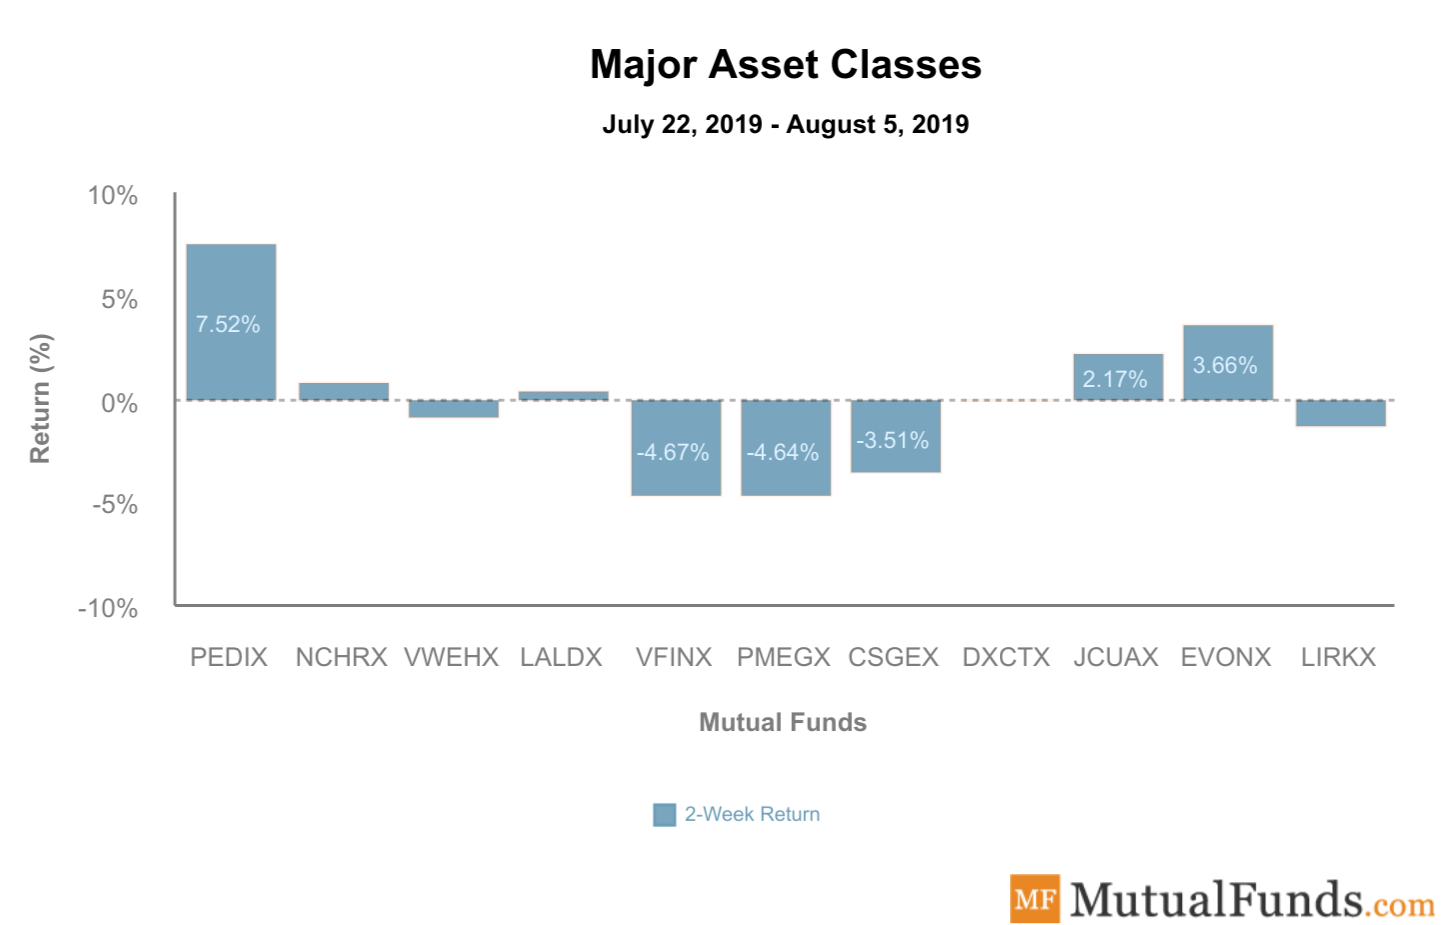 Major Asset Classes August 6 2019